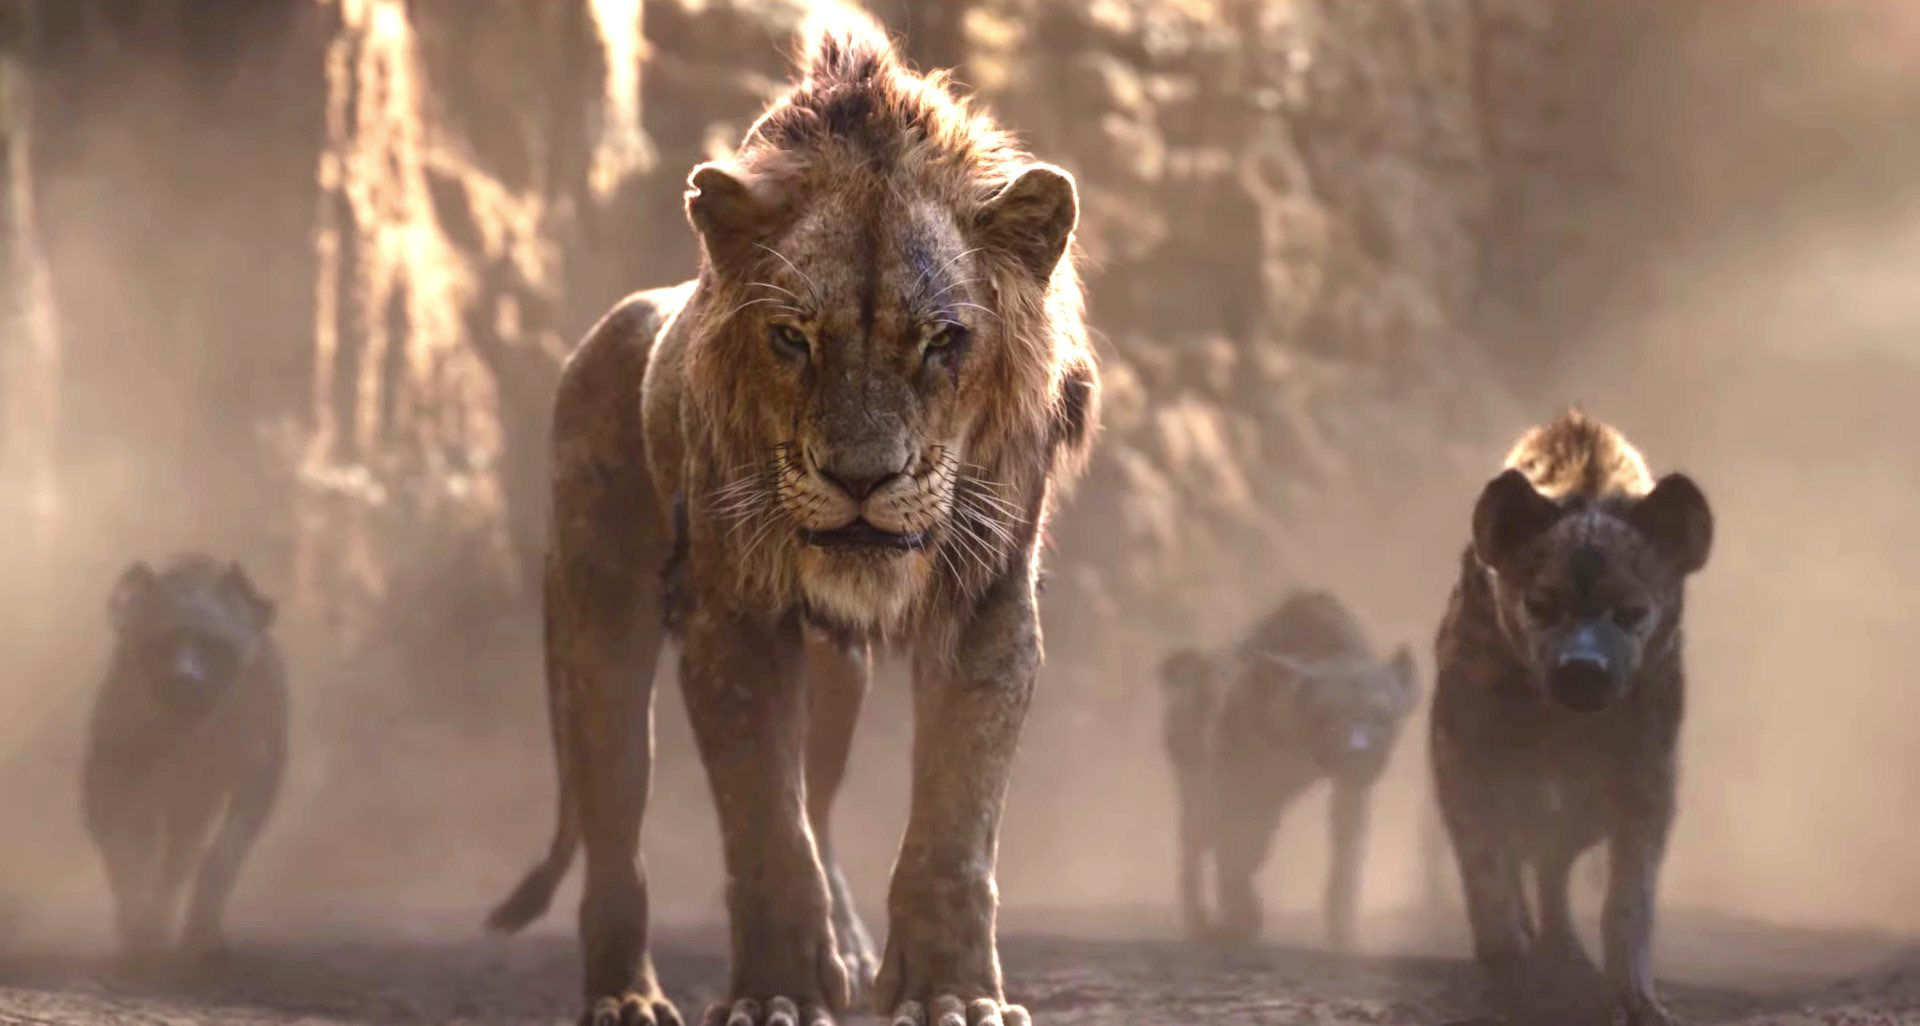 lion king original movie release date